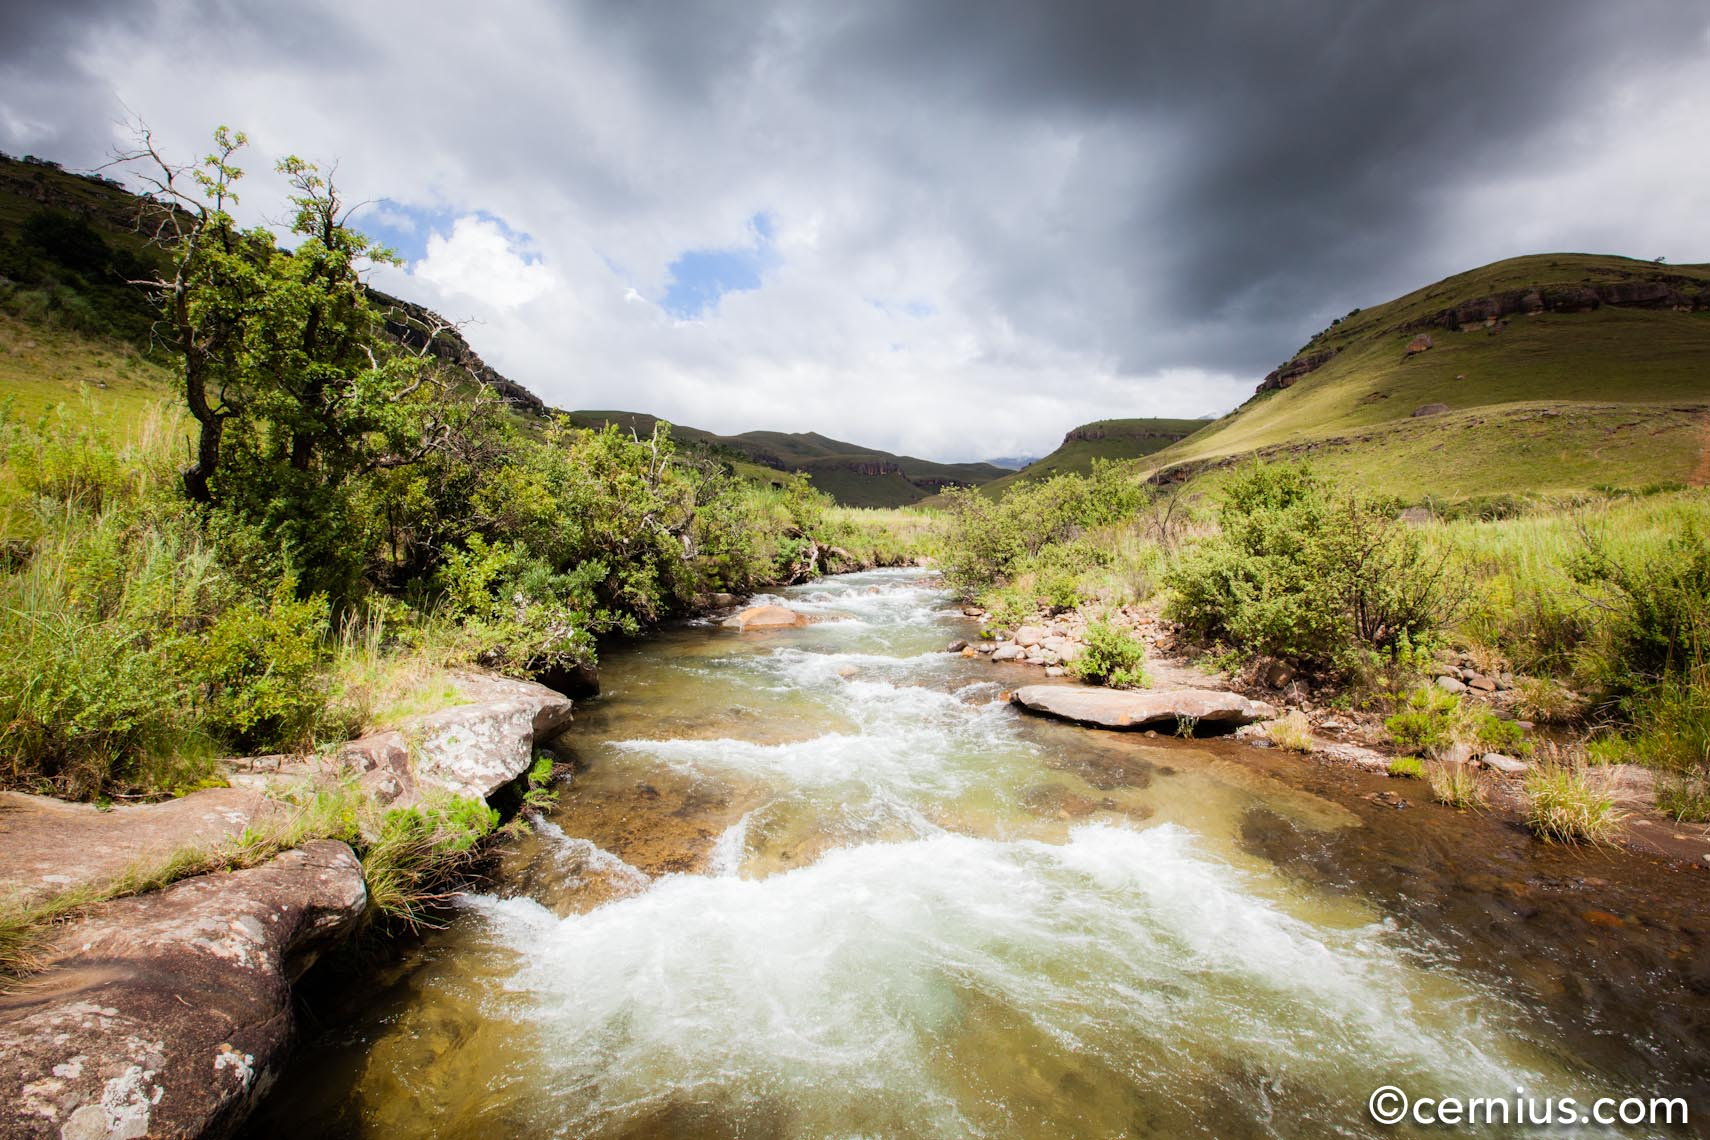 Travel to Drakensberg, South Africa | Juozas Cernius